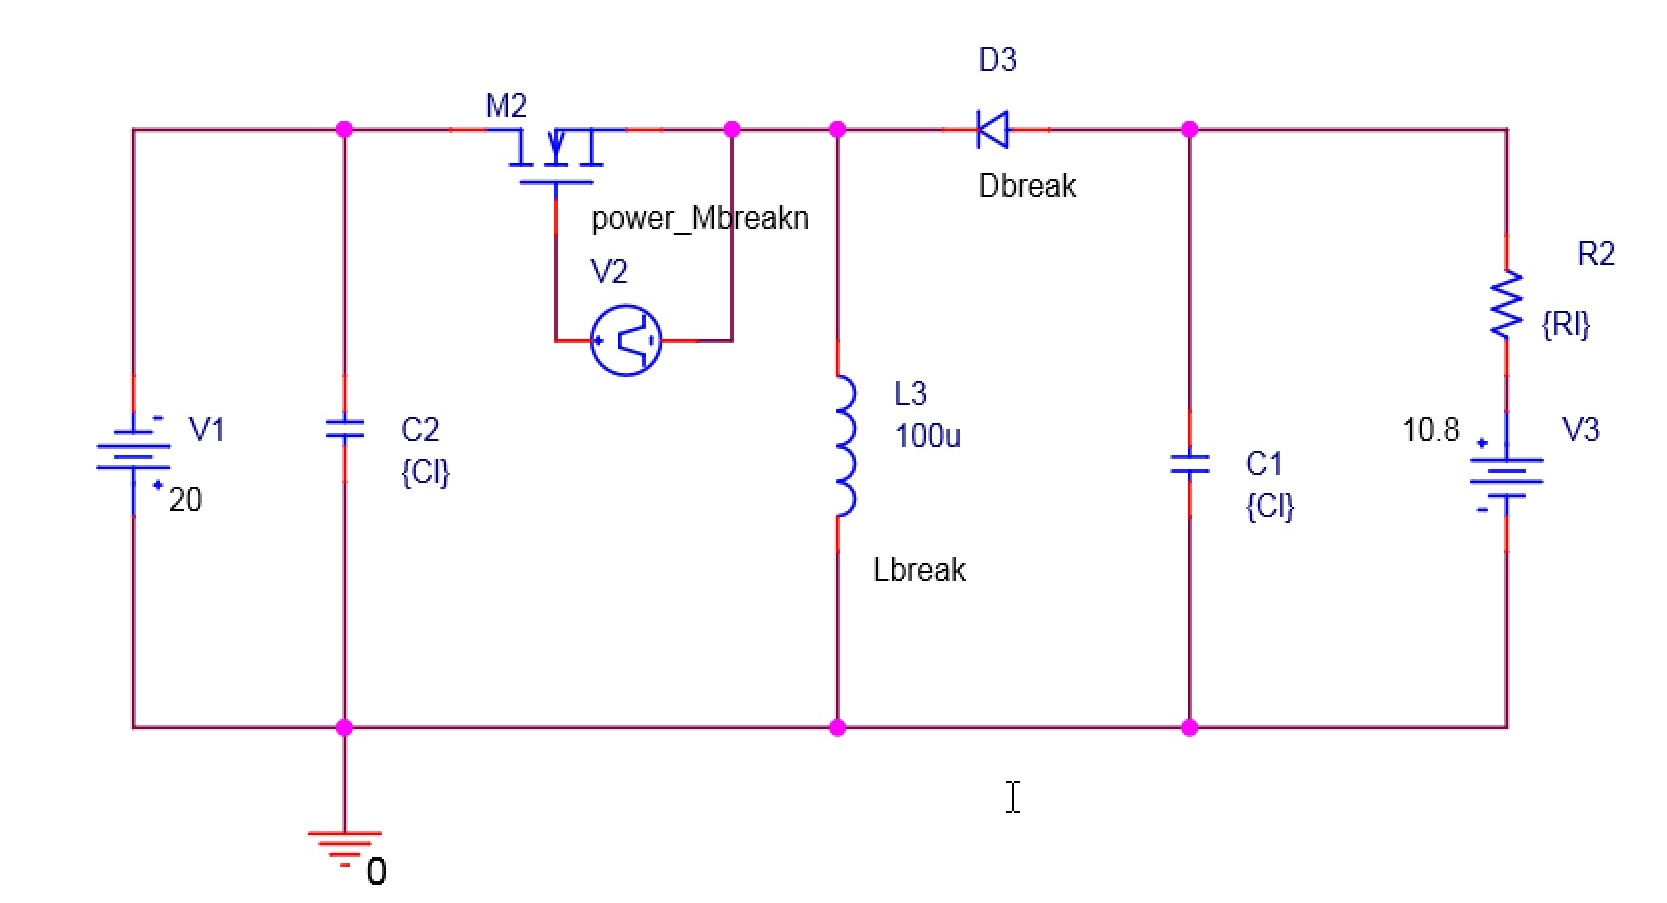 Fire Emergency Evacuation Plan besides Electrical Wiring Ground Wire Color Code moreover Single Line Diagram Power Plant furthermore USB Power Supply Circuit Diagram further Car Audio  lifier Circuit Diagram. on single supply circuit schematic diagram